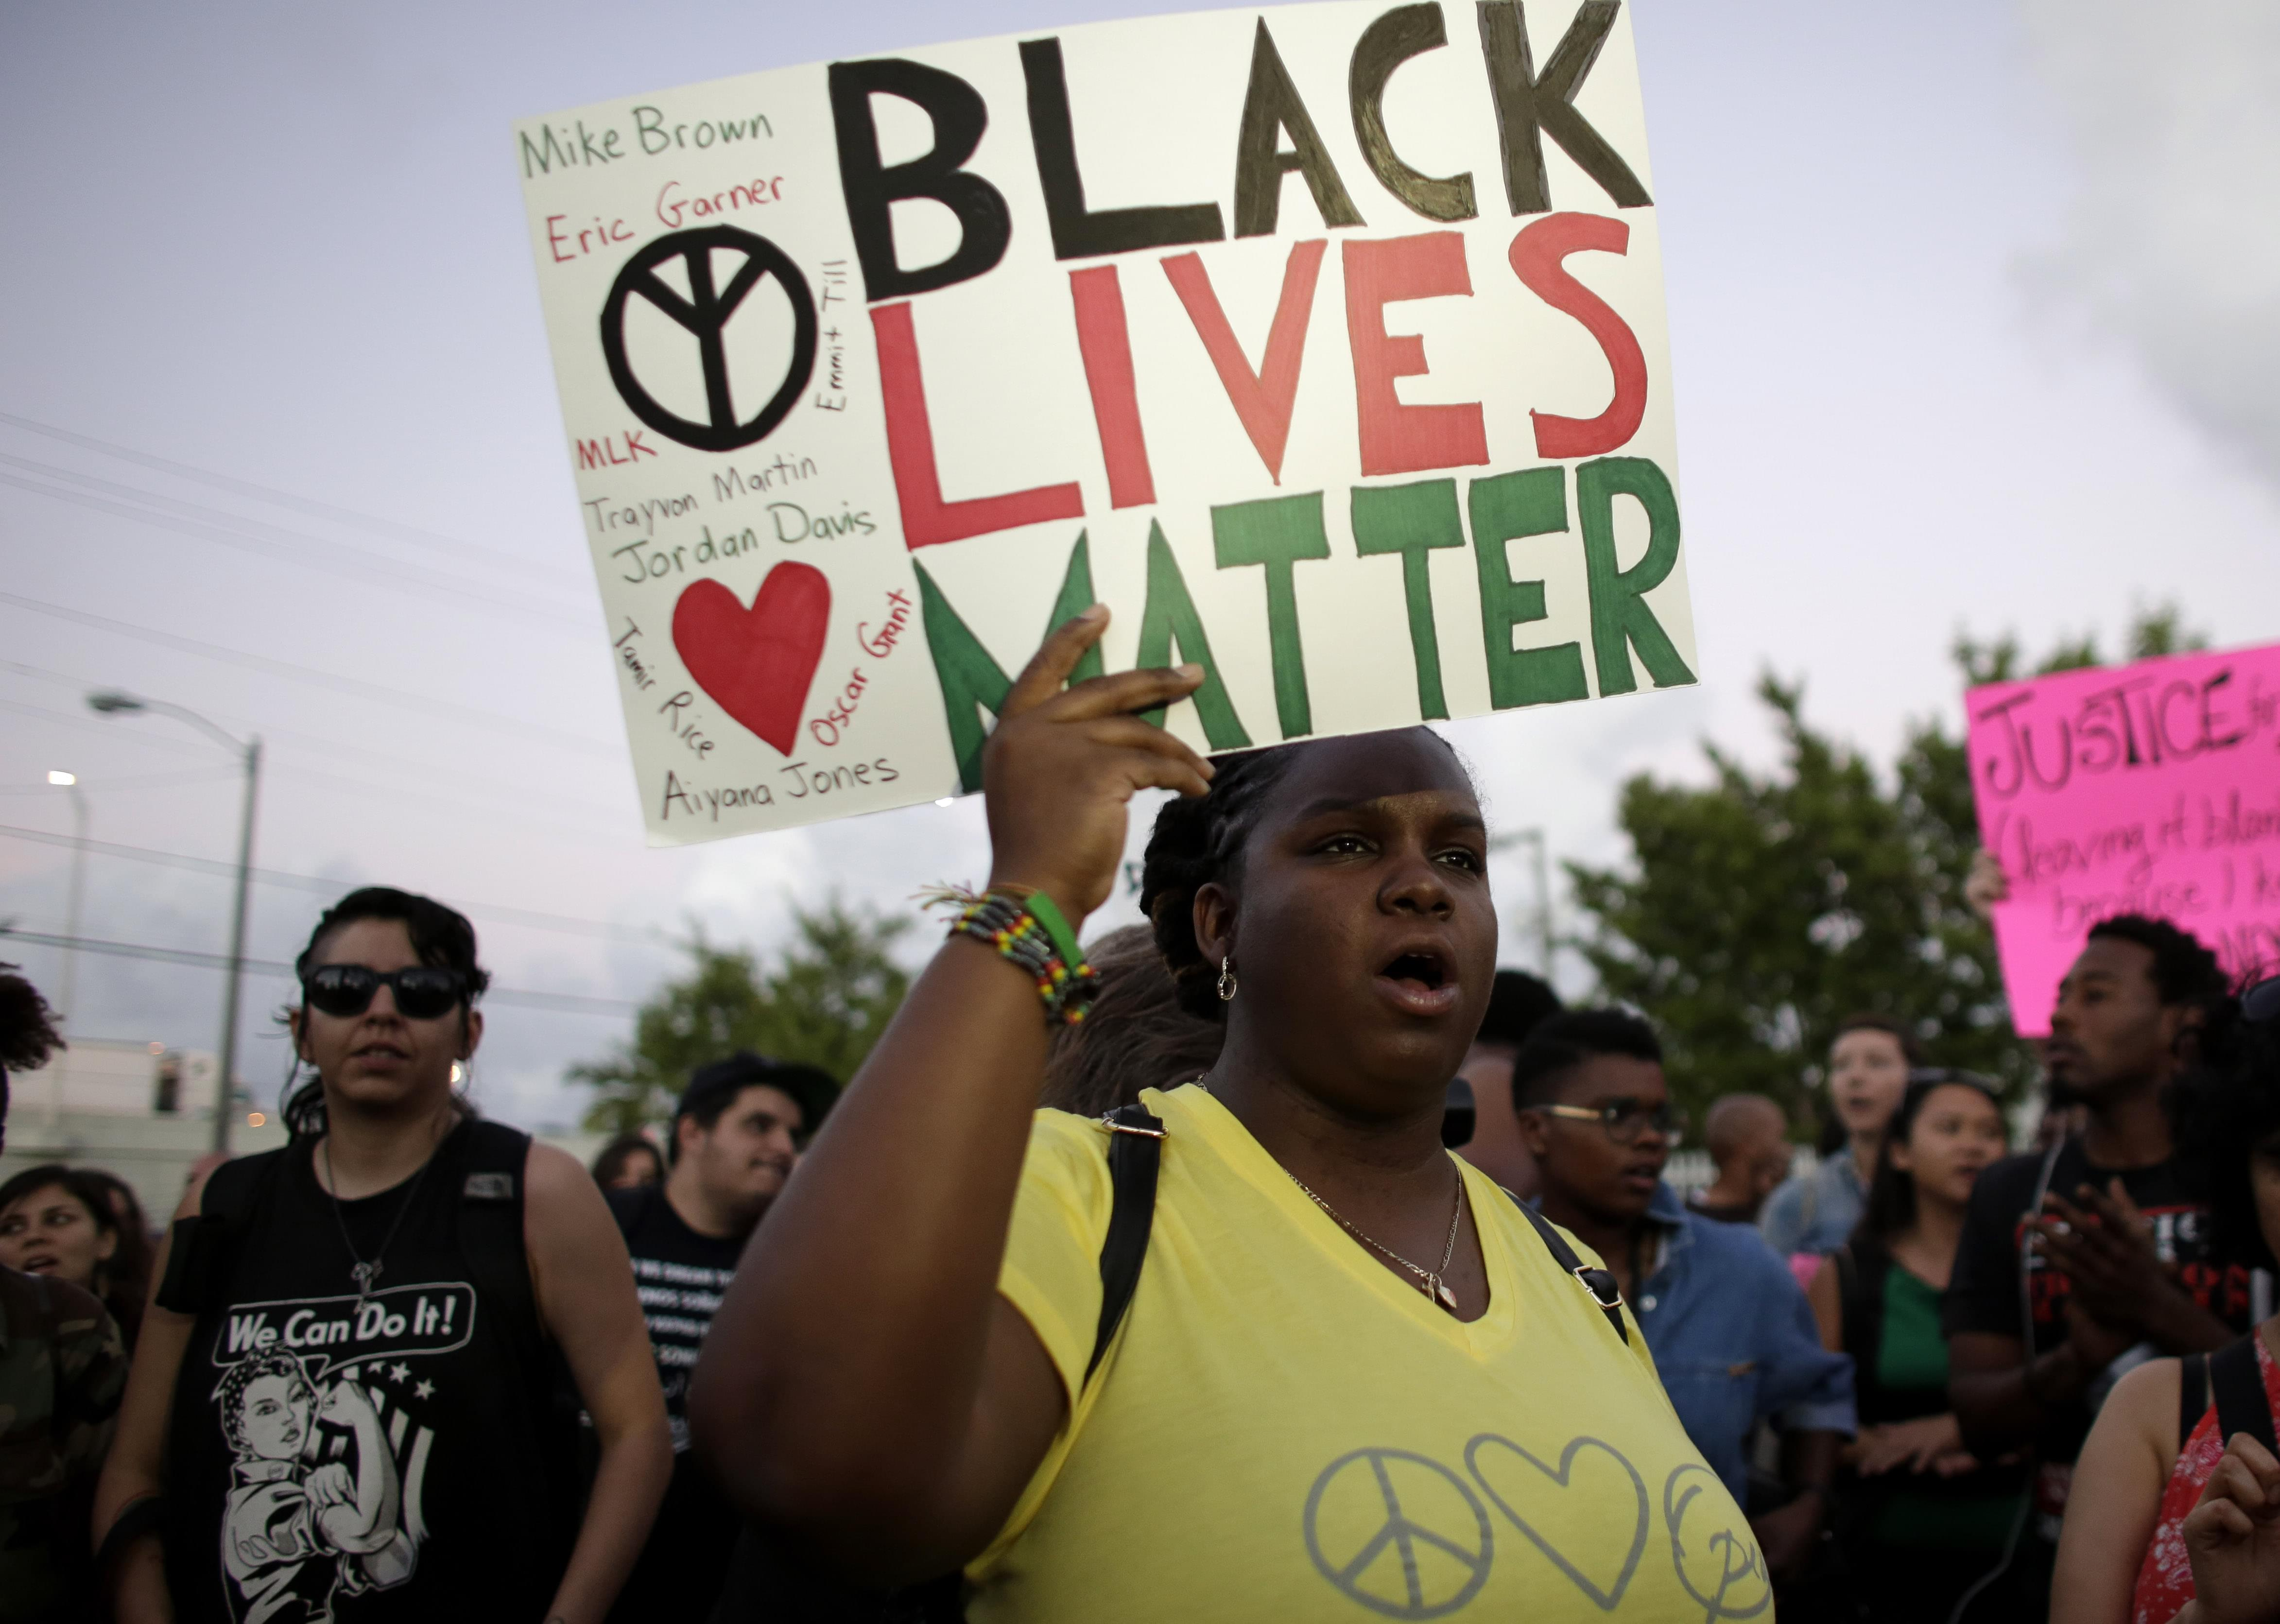 """Desiree Griffiths, 31, of Miami, holds up a sign saying """"Black Lives Matter"""", with the names of Michael Brown and Eric Garner, two black men recently killed by police, during a protest Friday, Dec. 5, 2014, in Miami. People are protesting n"""